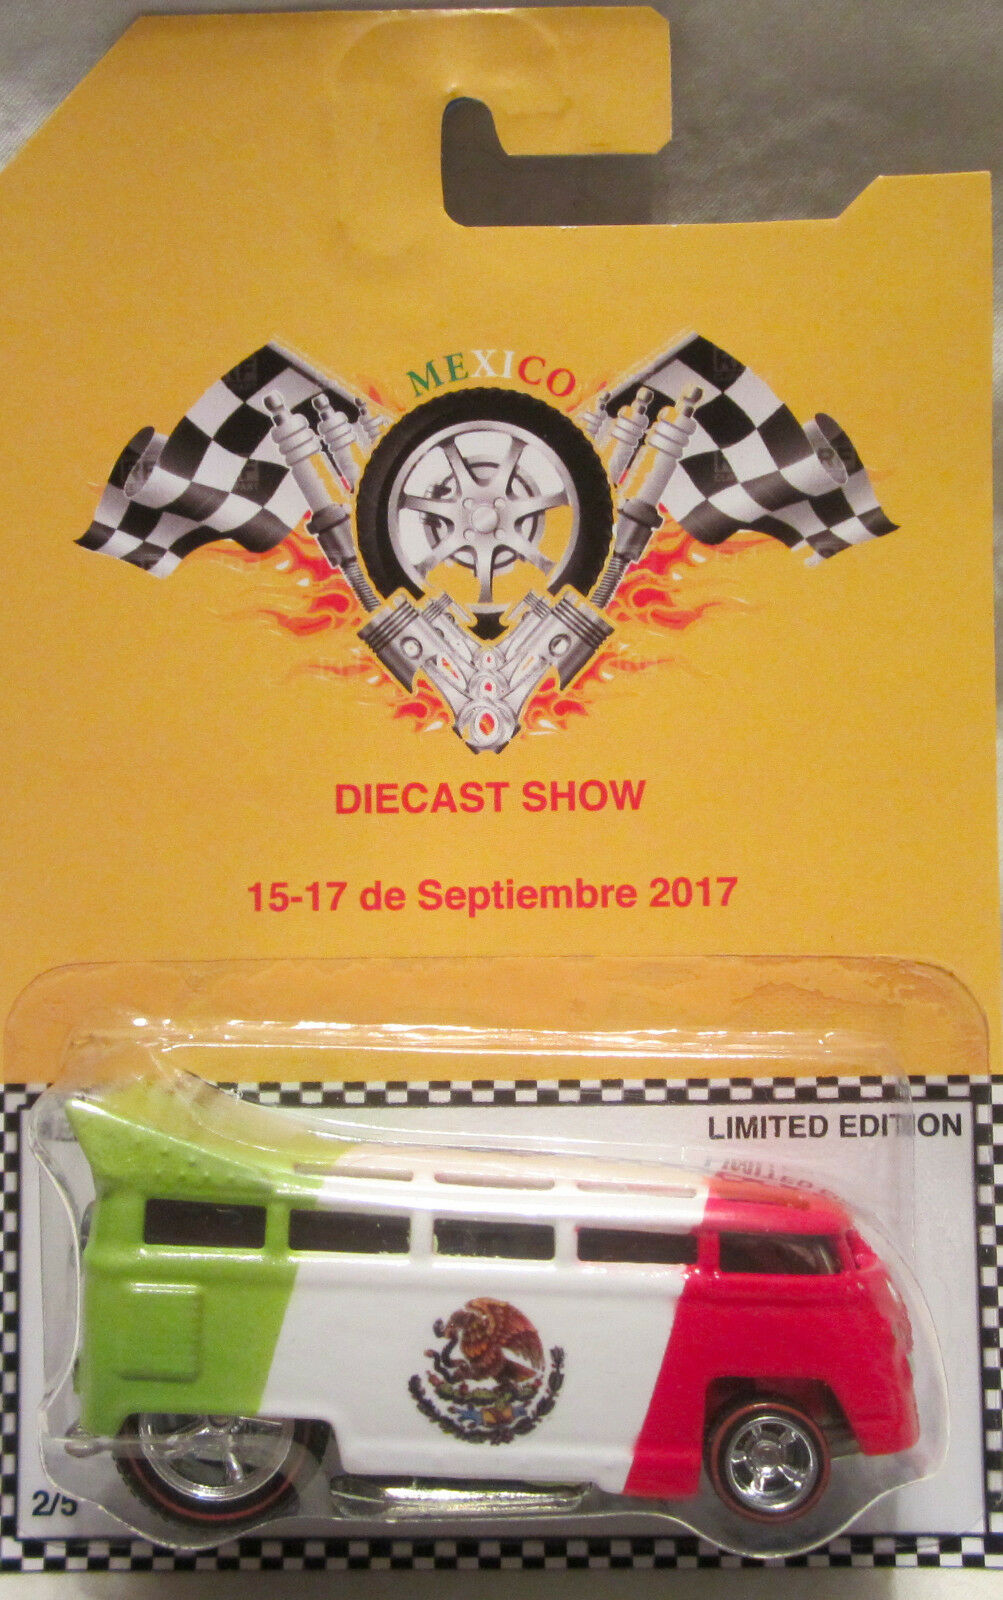 heta hjul CUCOM VW T1 DRAG buss 2017 Mexico tärningskast Show Real Riders  5 Made